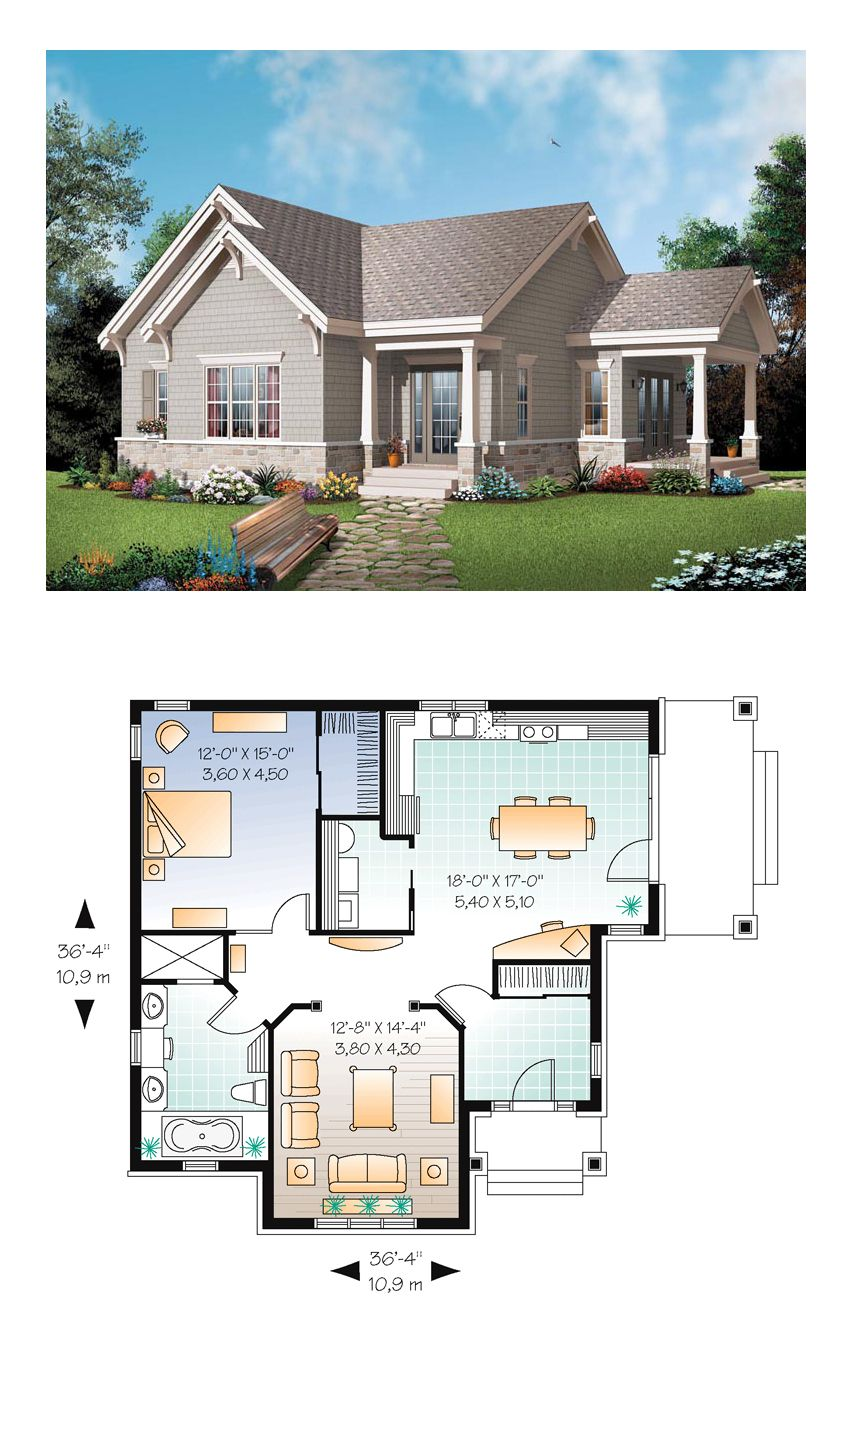 Craftsman Style House Plan 65524 With 1 Bed 1 Bath Bungalow